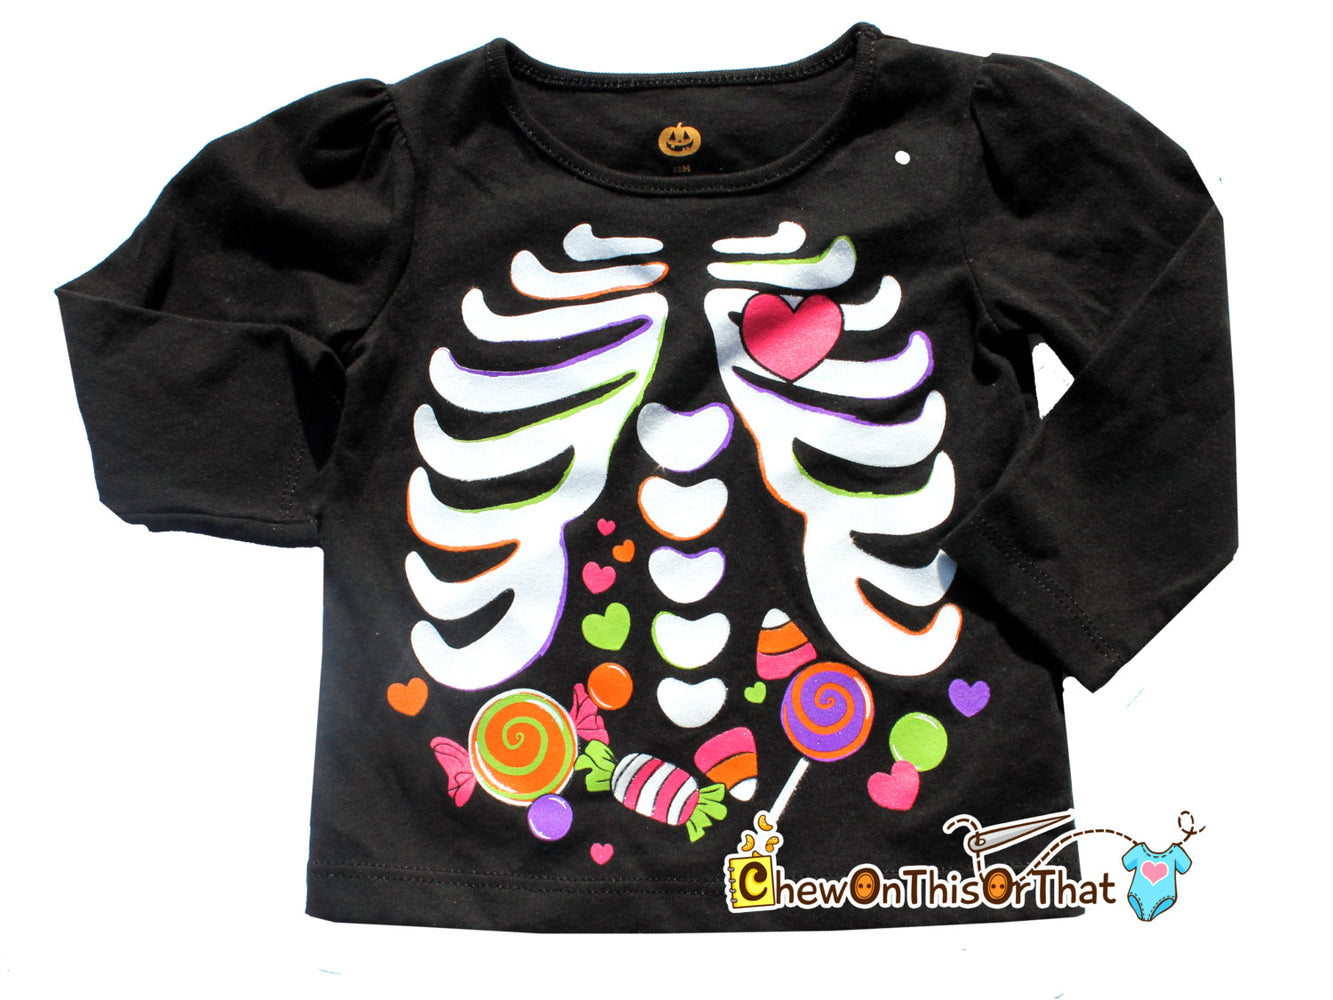 Black Halloween Skeleton Toddler Top with Candy in the Belly - Girls Costume Shirt - Chew On This Or That